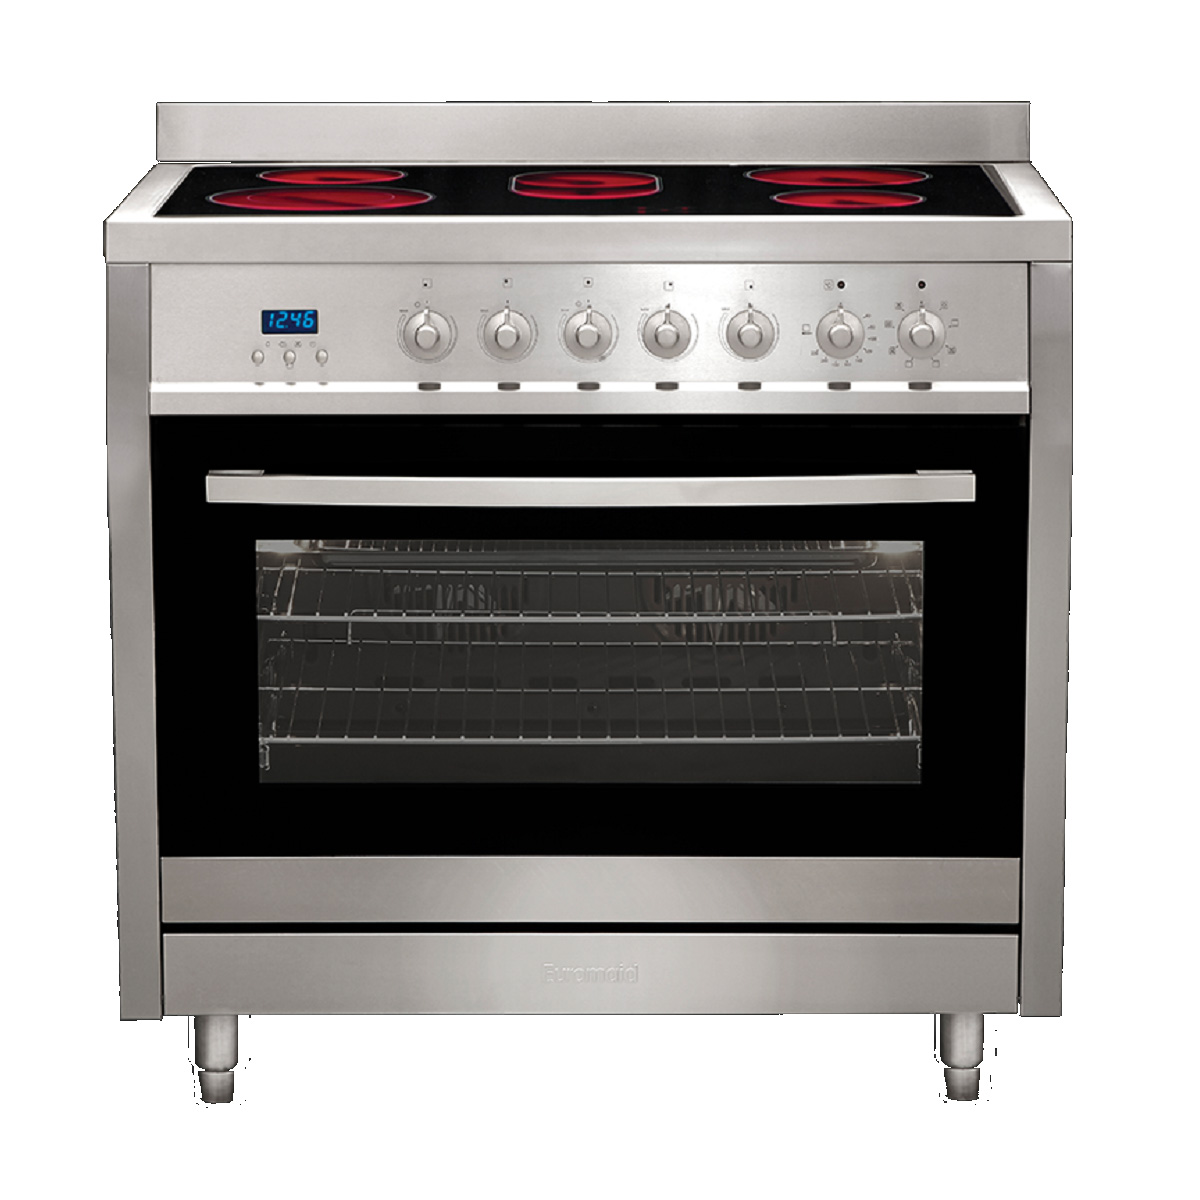 Euromaid CS9TS Freestanding Electric Oven Stove